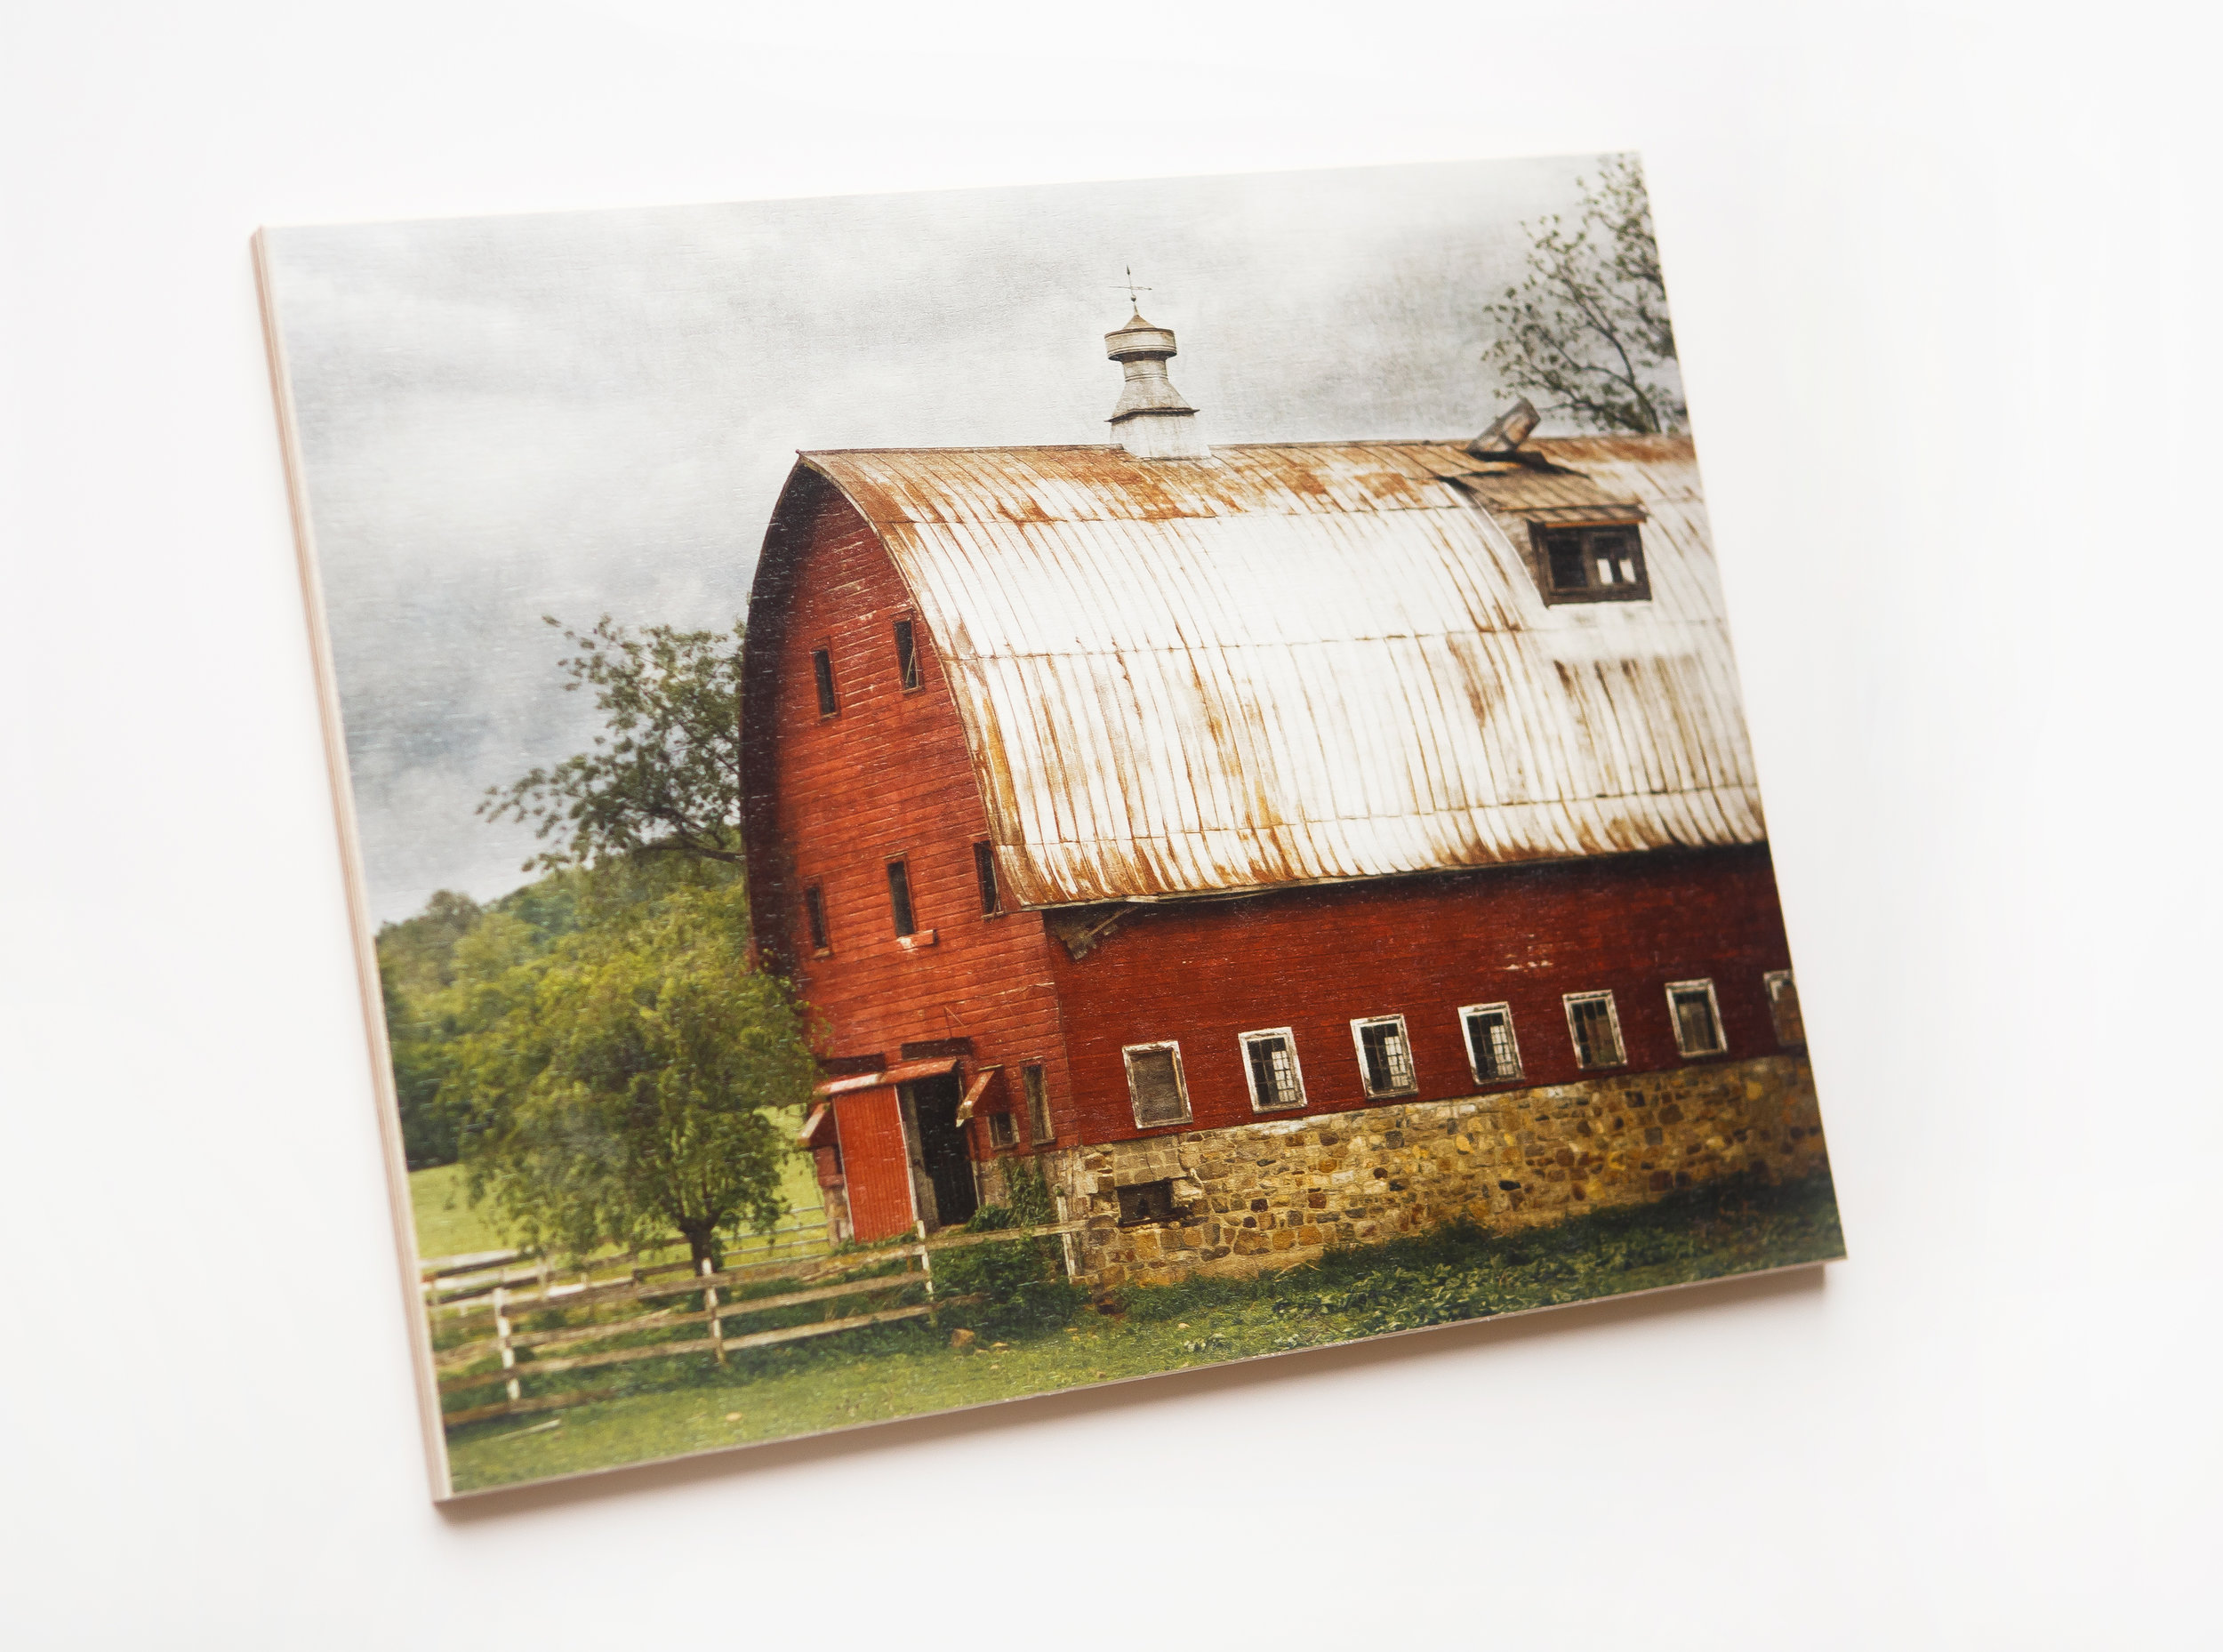 Introducing wood prints - Your image is printed directly onto high-quality laminated wood. The wood will show through the white and light areas of your image, creating a rustic, vintage look. Each print is unique, due to the natural characteristics of the wood and the finished product looks almost like a painting.